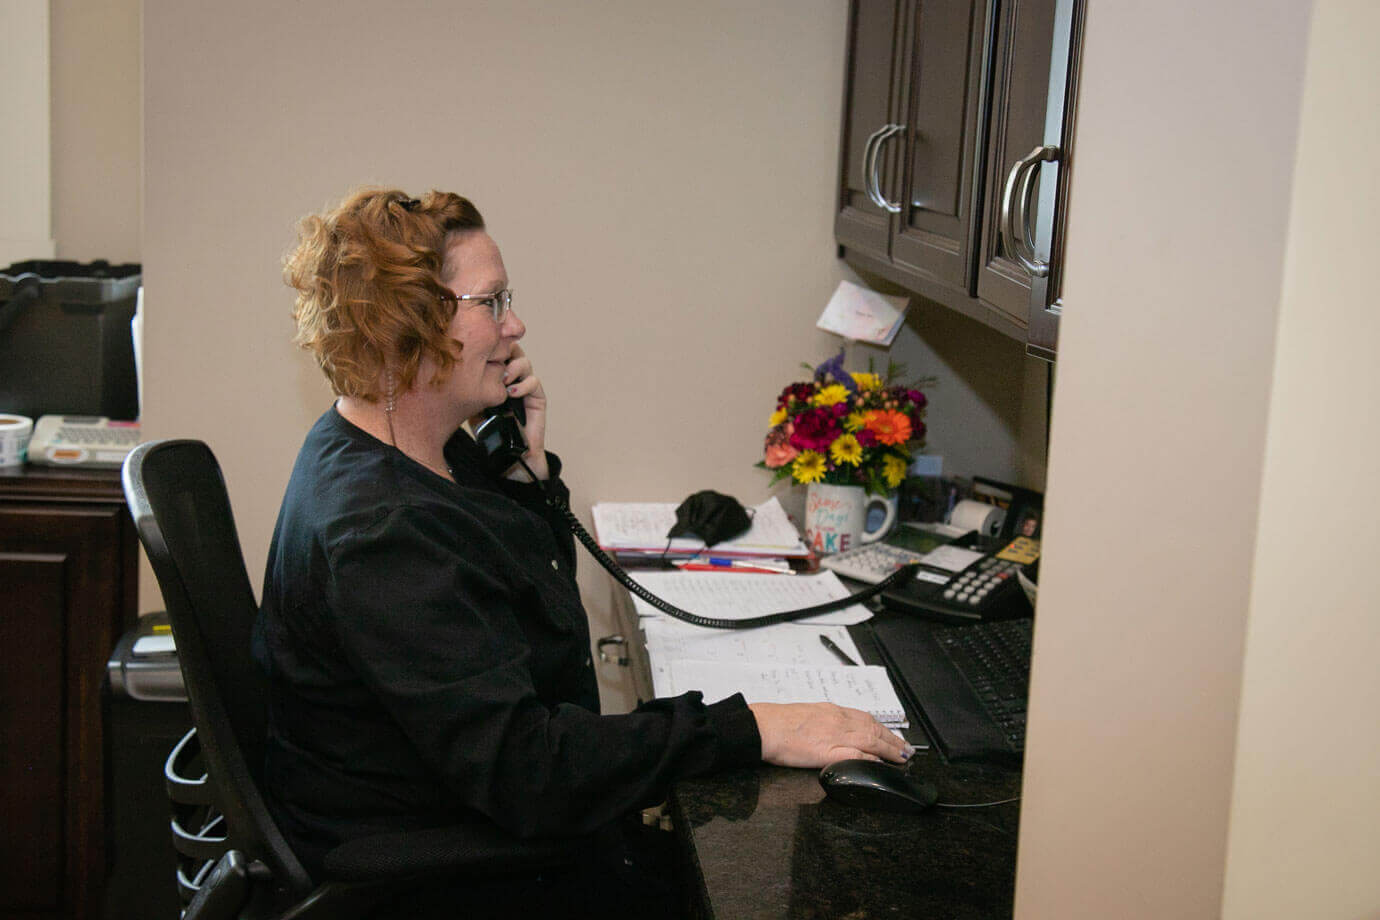 staff member at green dental on the phone with patient